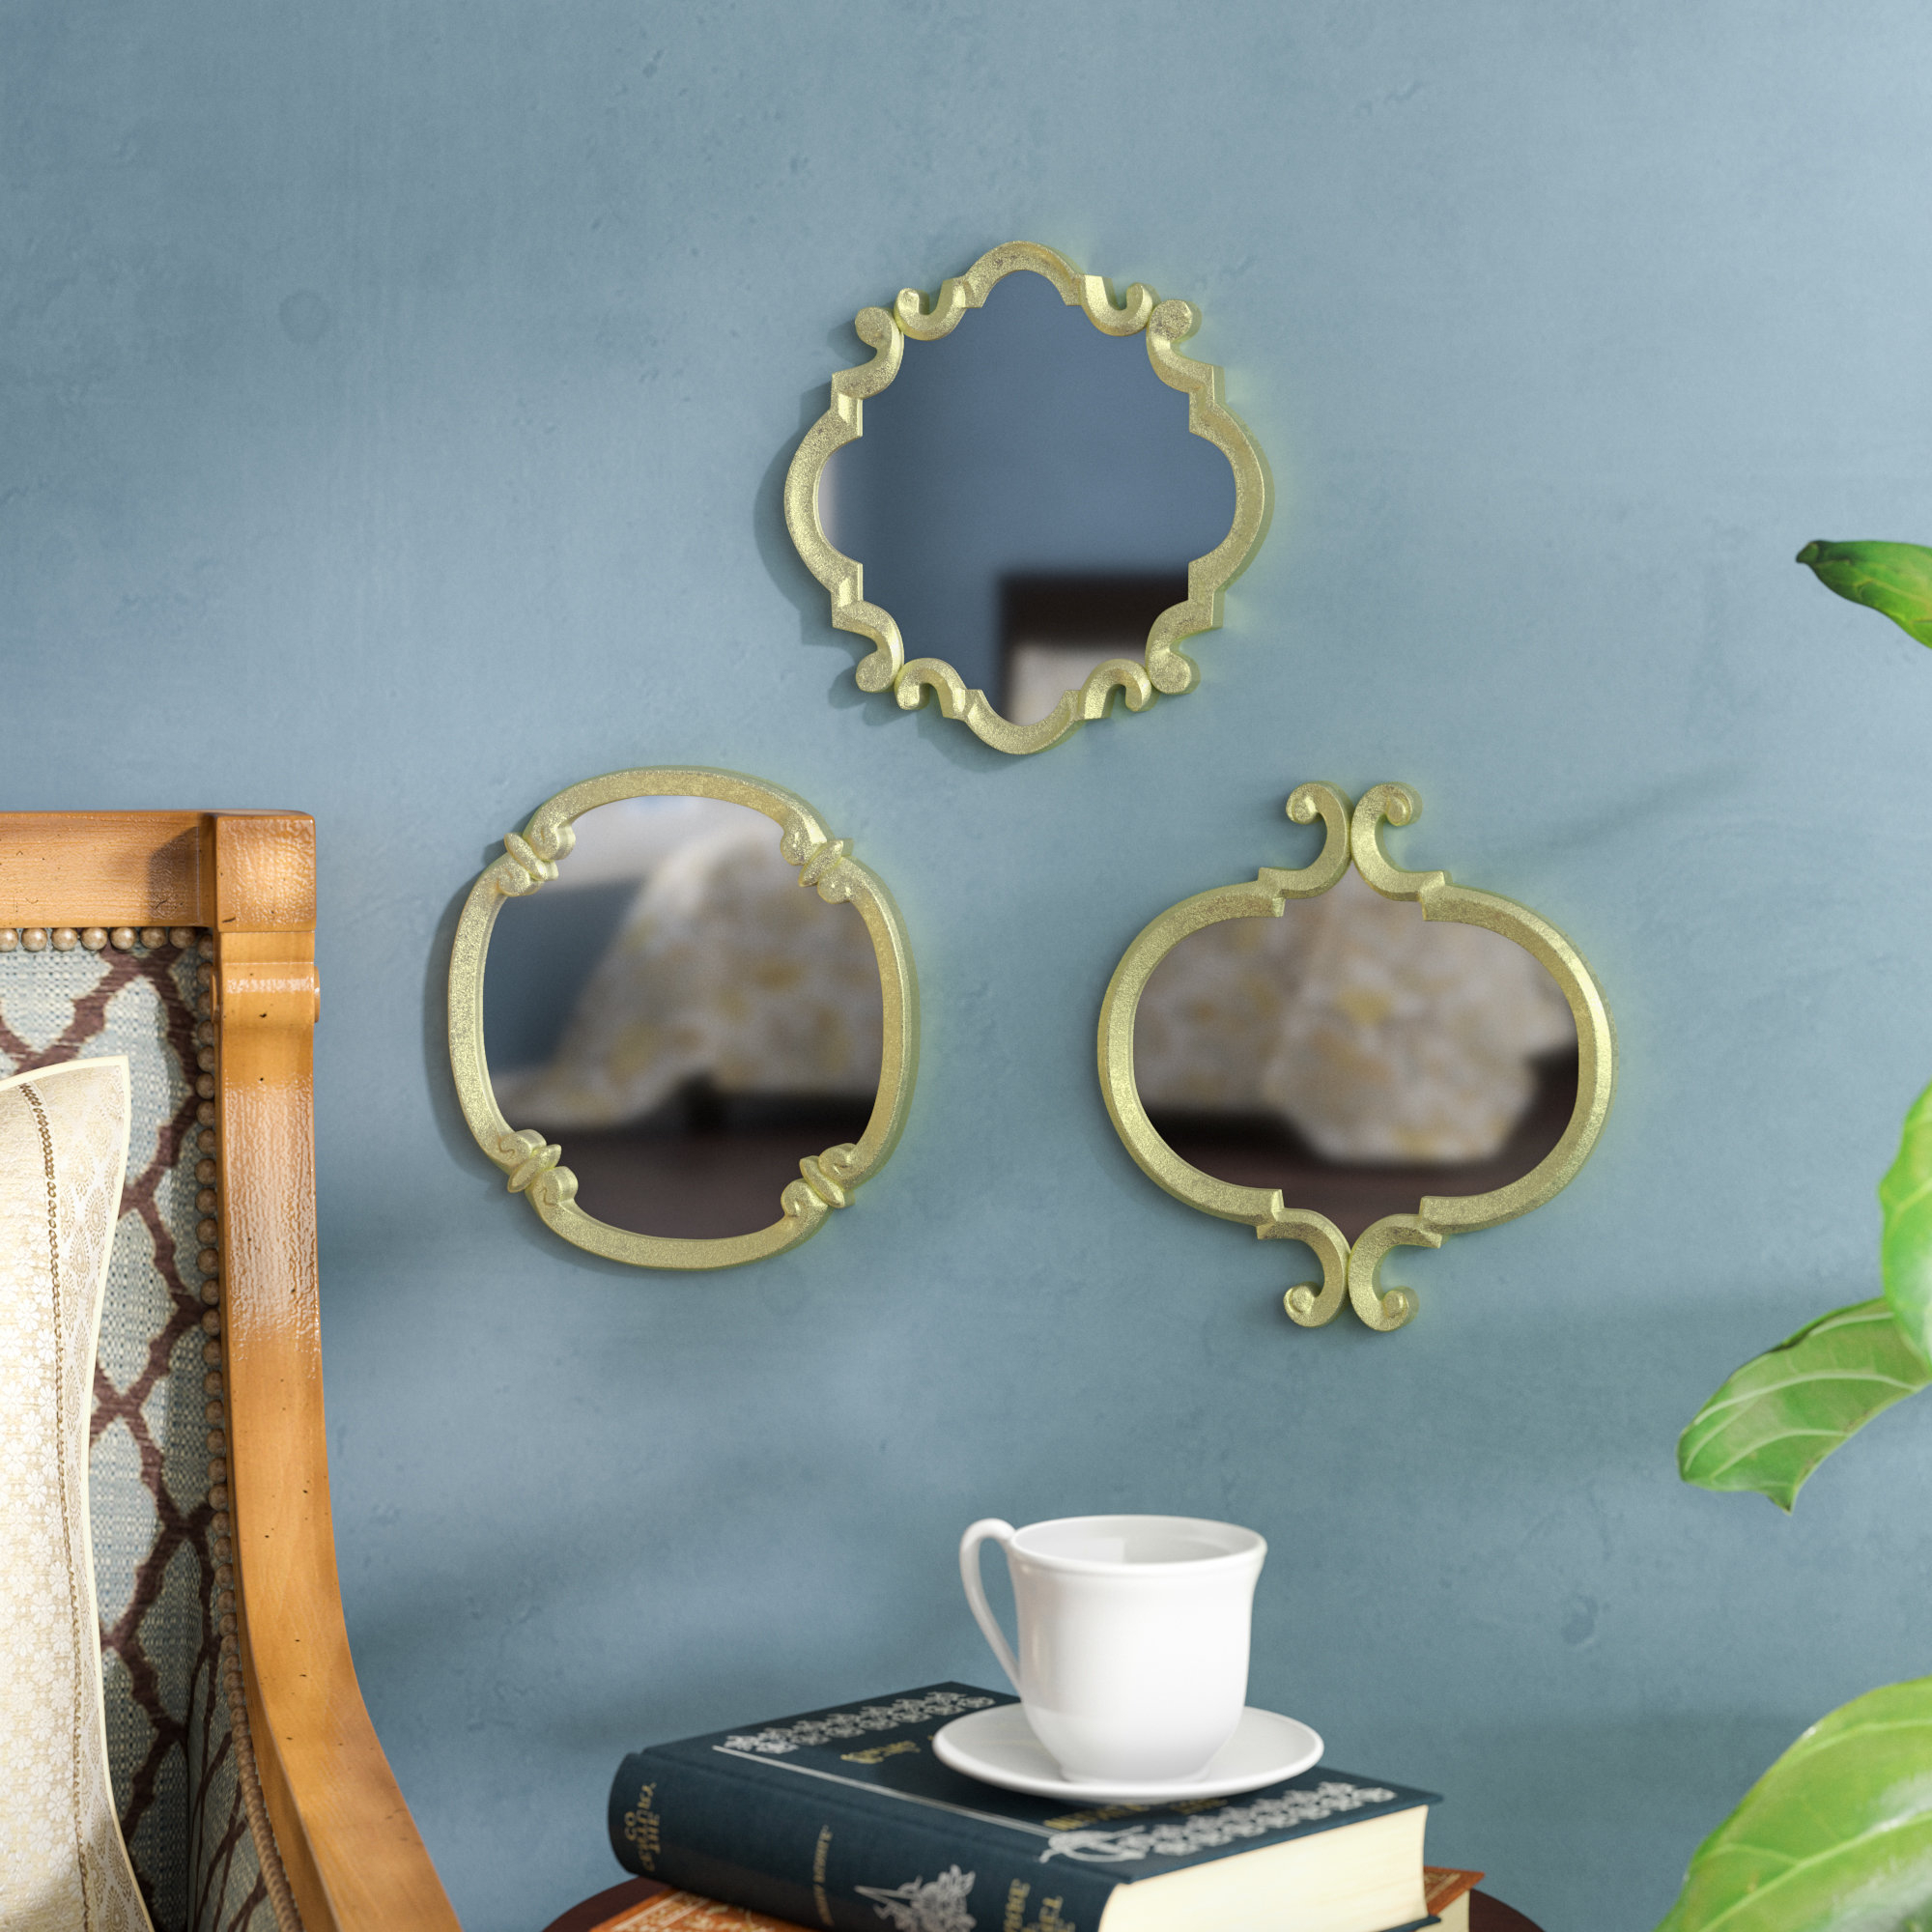 Astoria Grand 3 Piece Contemporary Meadow Wall Mirror Set Intended For Popular Set Of Wall Mirrors (View 19 of 20)